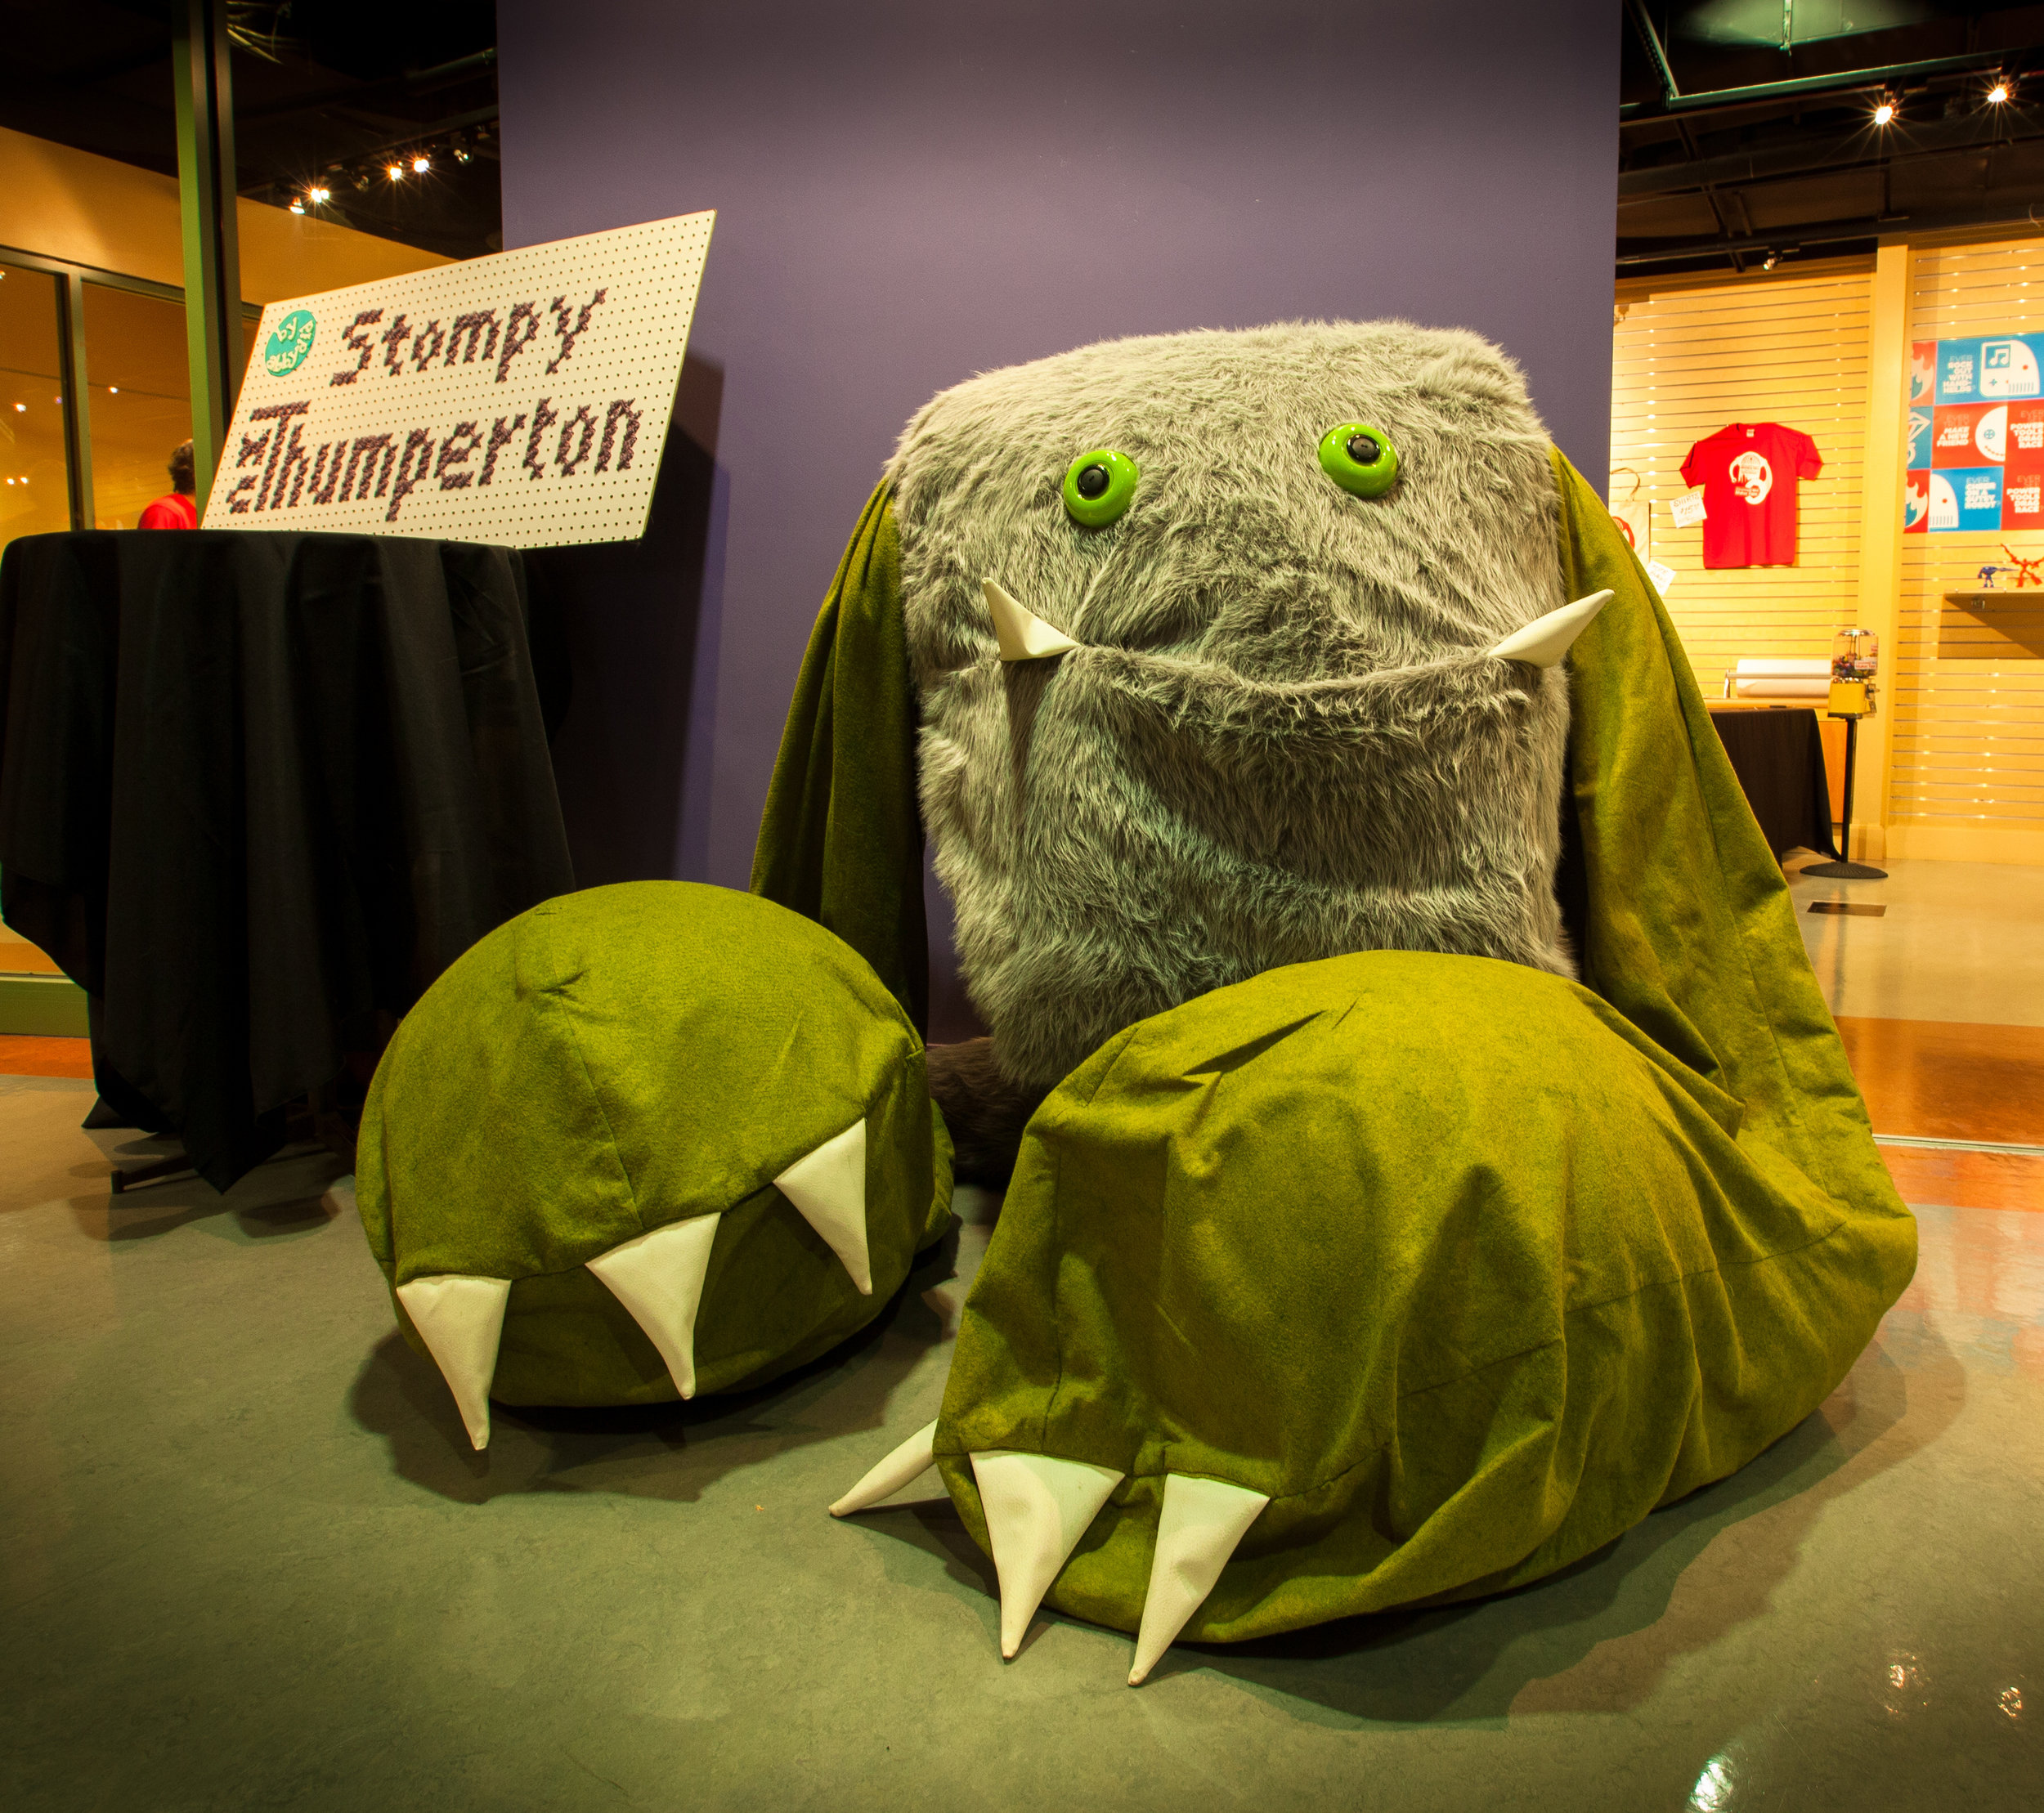 After a day of playing at Maker Faire, Stompy was feeling a bit disheveled.